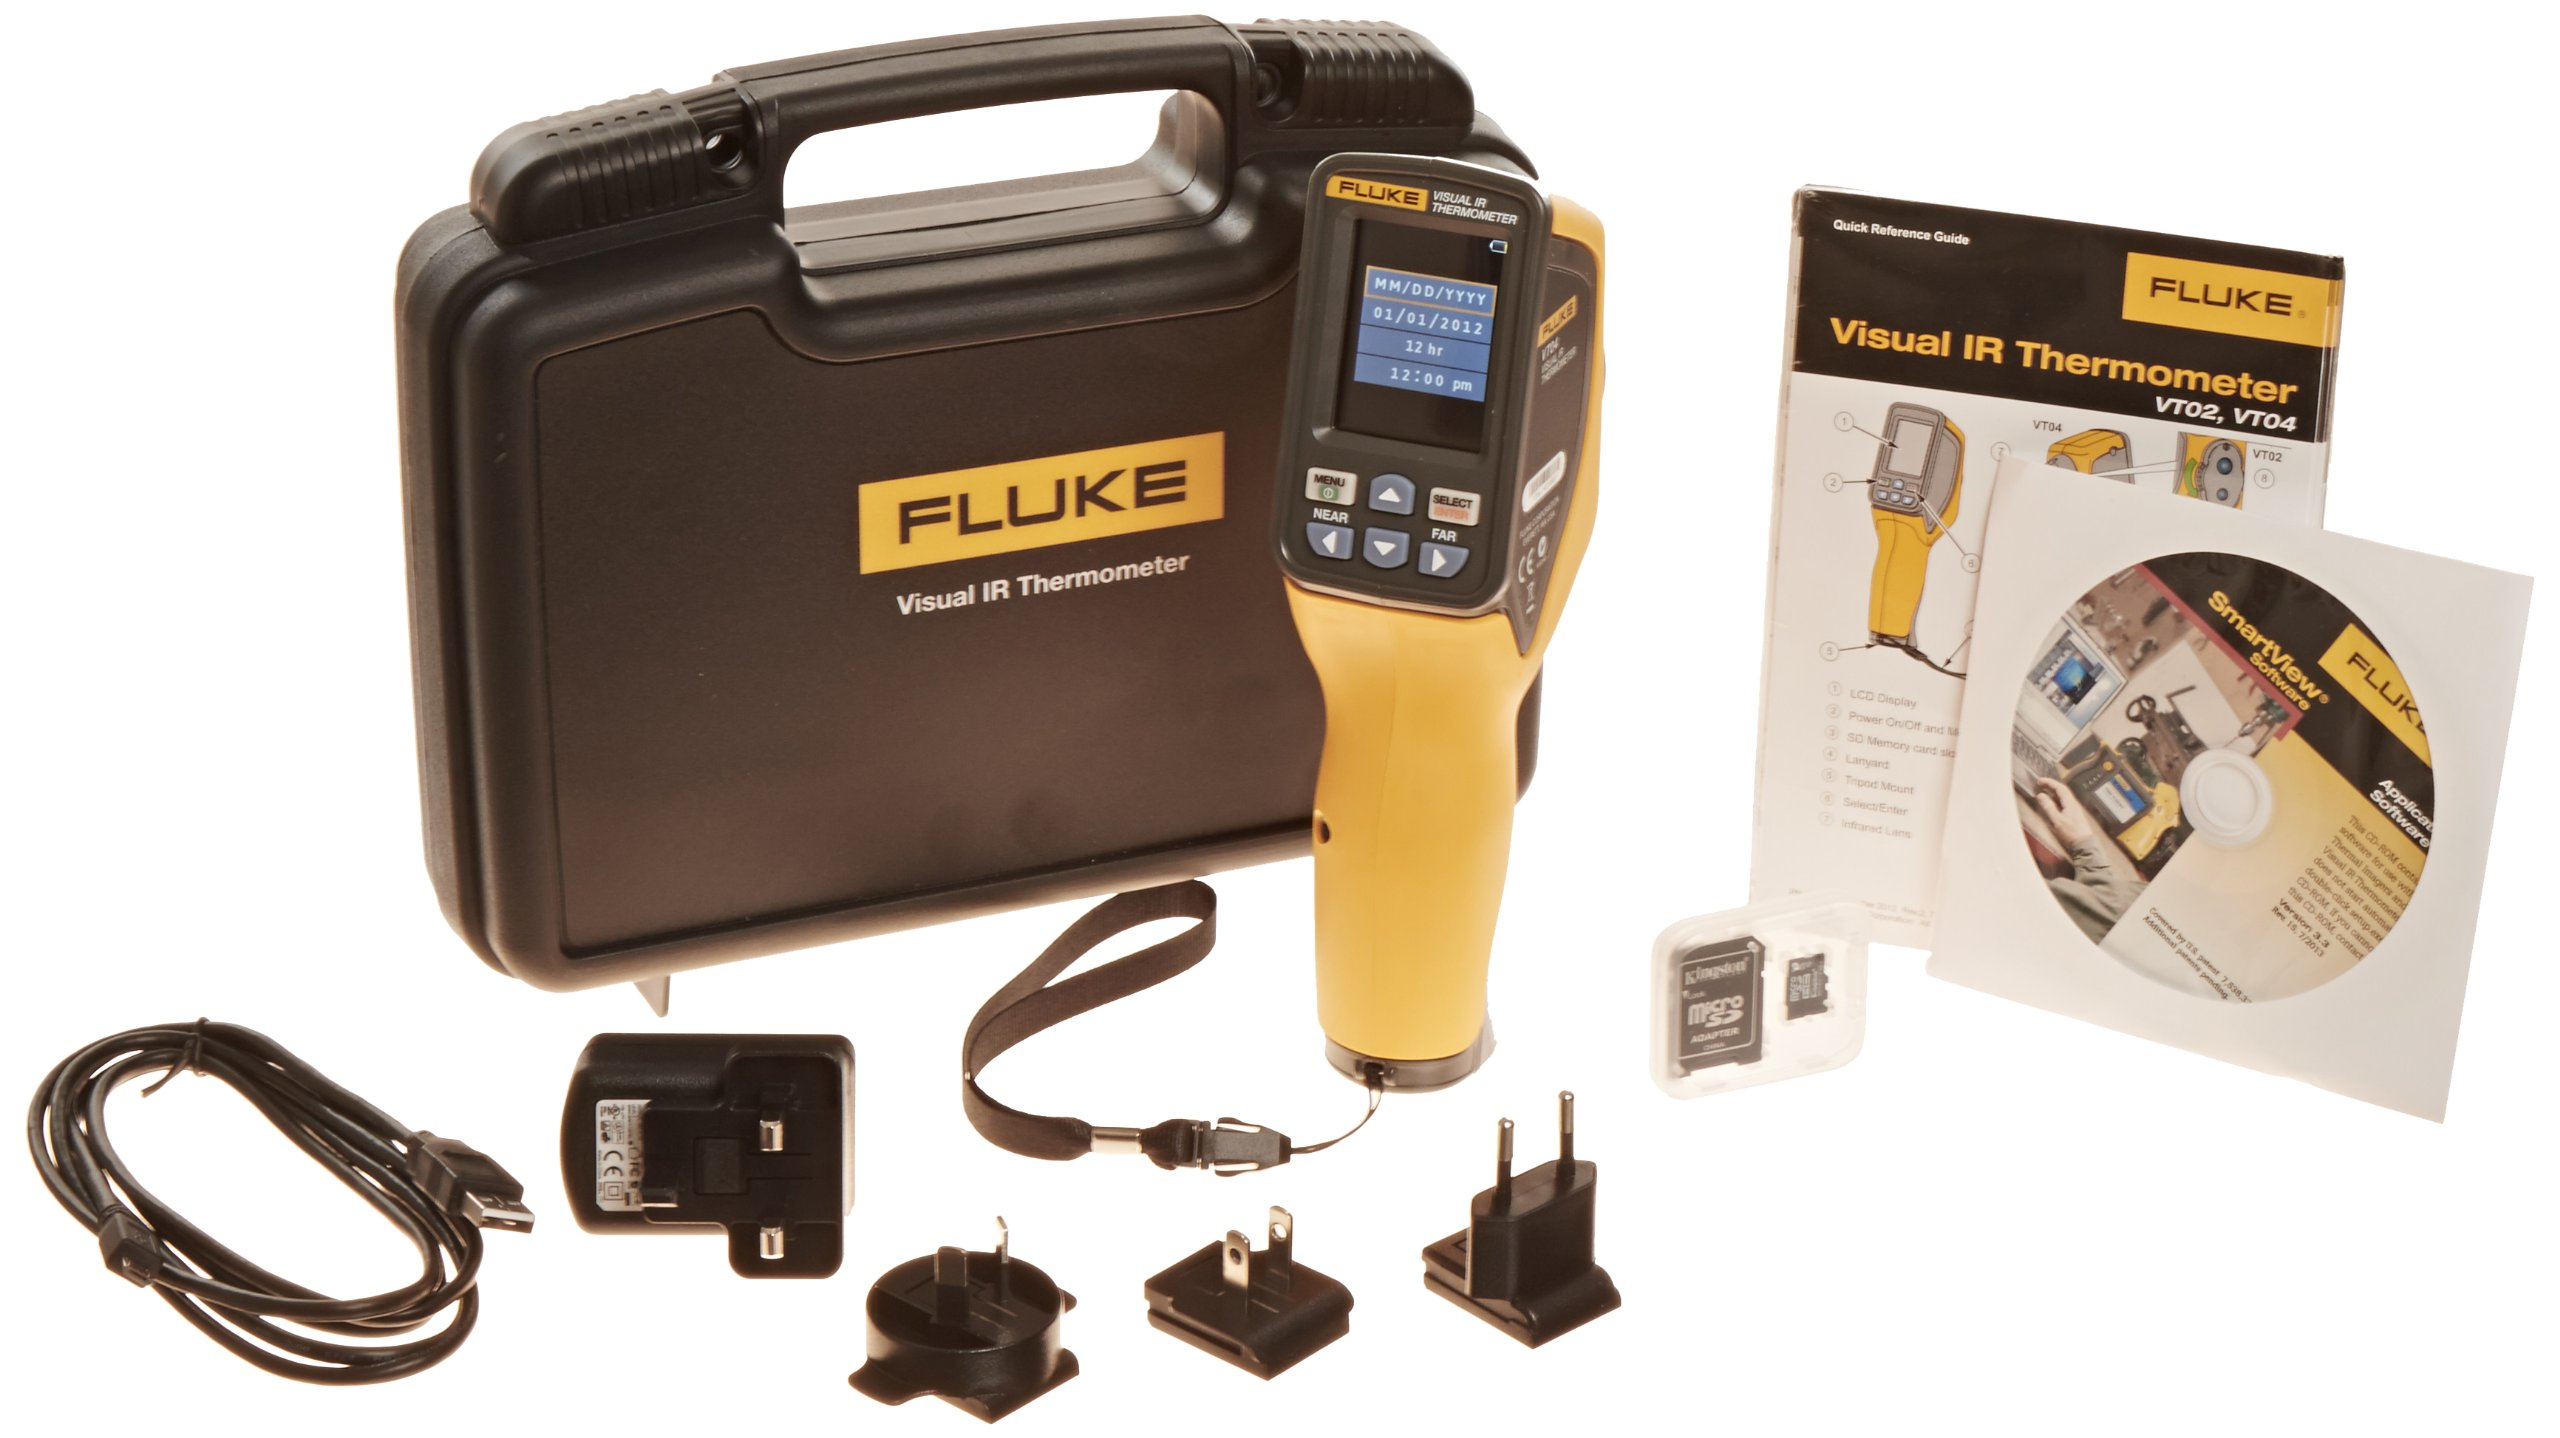 Fluke FLK-VT04-HVAC-KIT HVAC Kit for Visual Infrared Thermometer